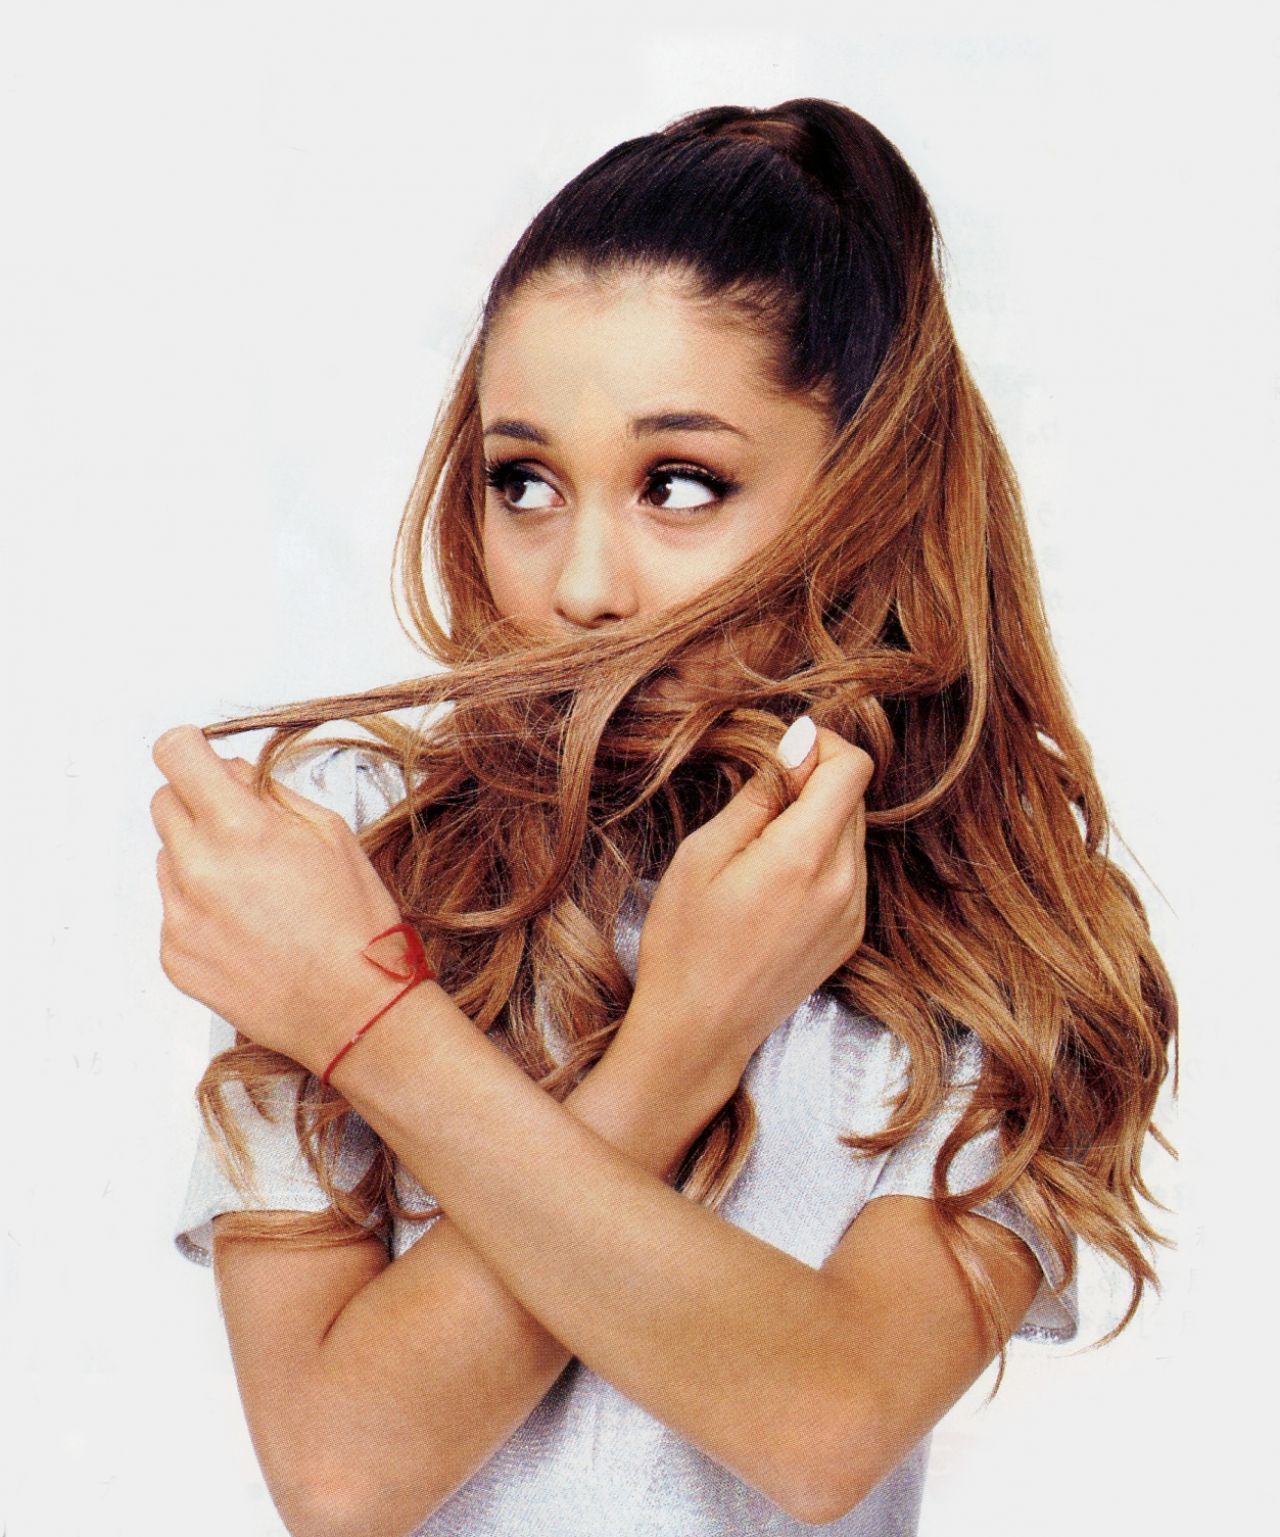 1280x1537 Ariana Grande Iphone Sexy Wallpapers